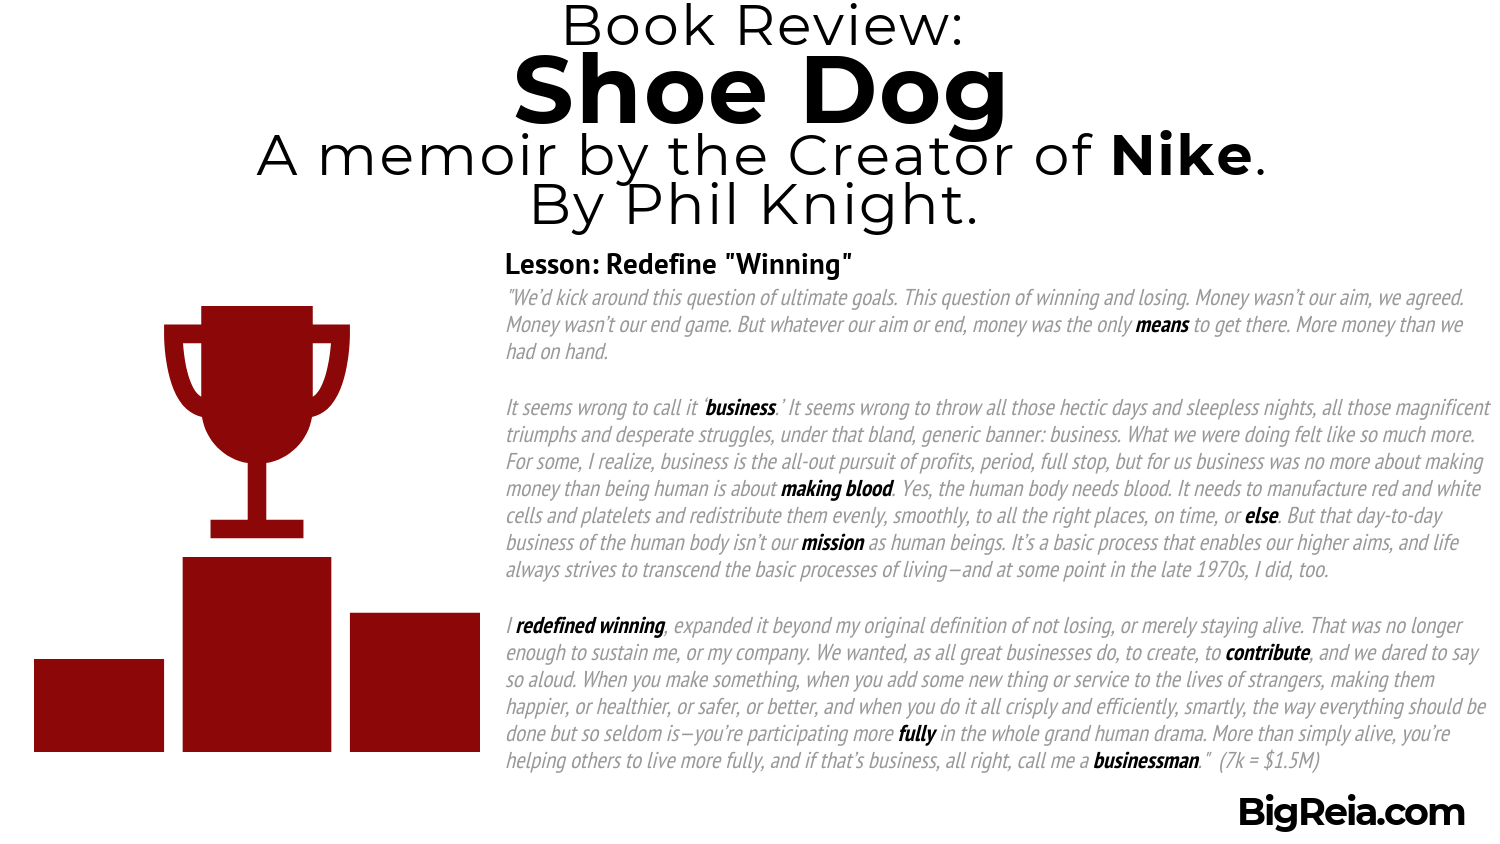 Book review Shoe Dog excerpt on winning